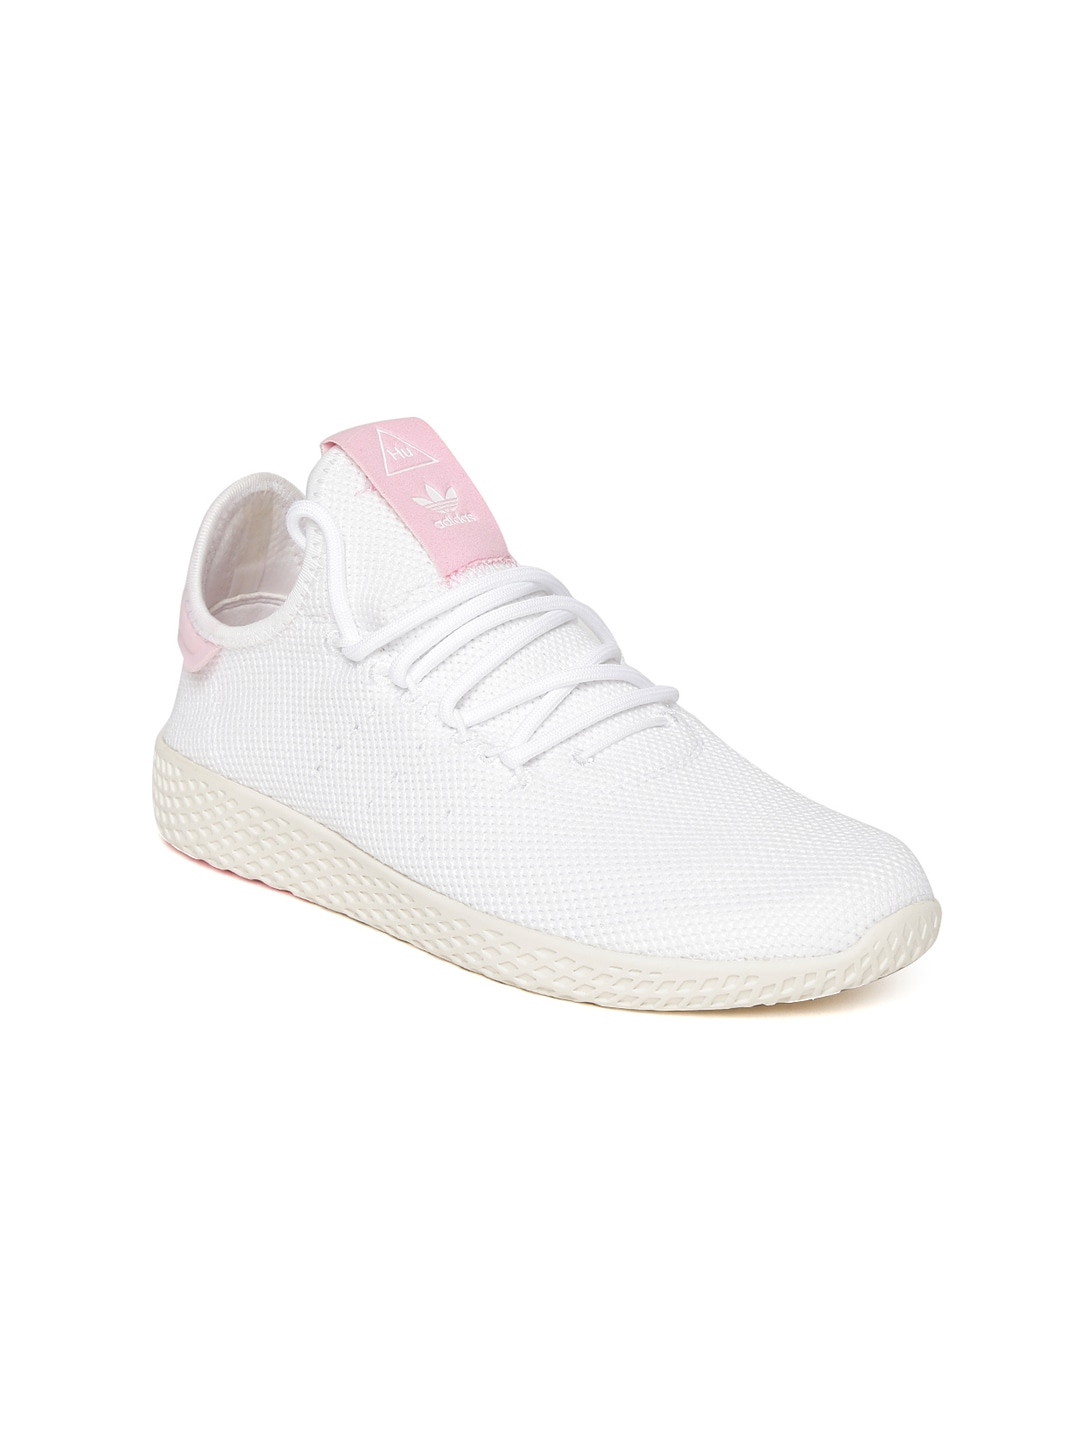 best service 0a47d acf30 Adidas Shoes Hat - Buy Adidas Shoes Hat online in India